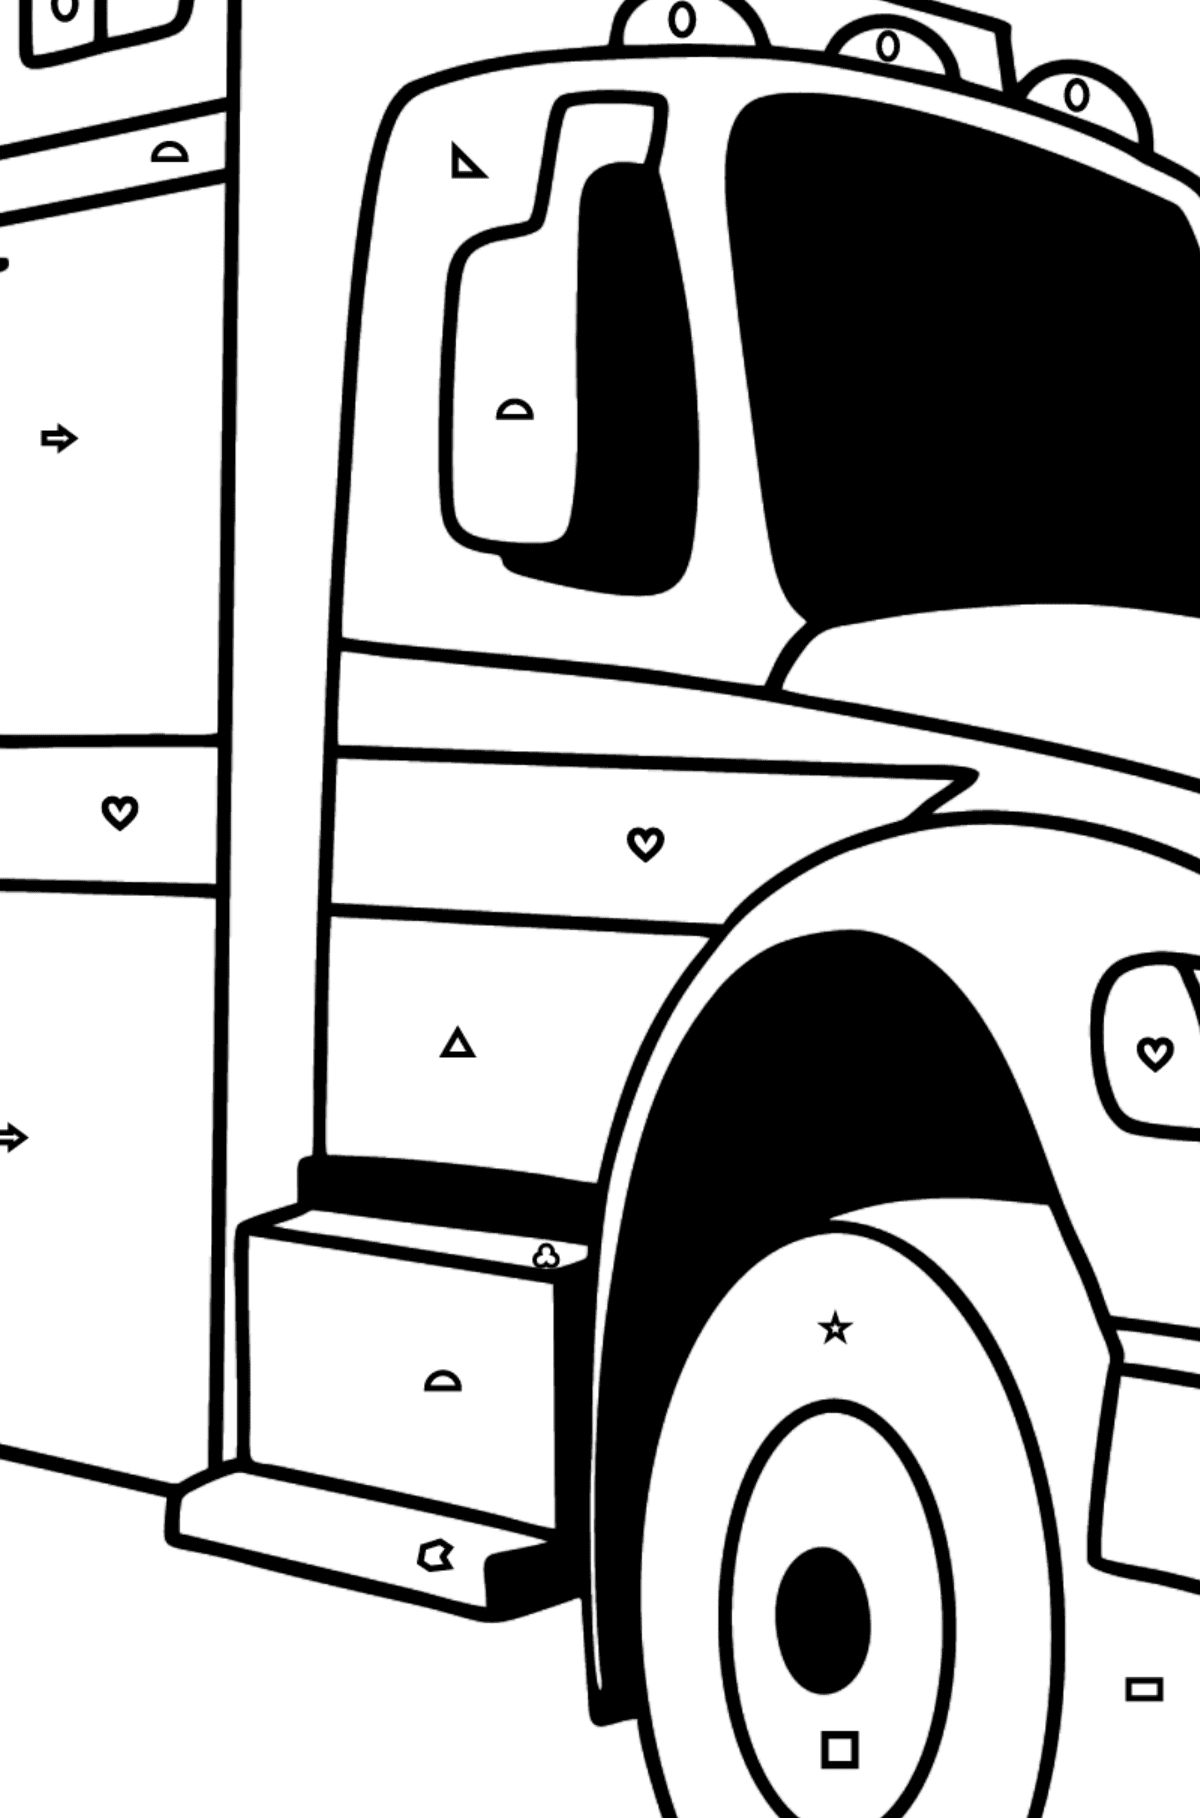 Fire Truck in Argentina coloring page - Coloring by Geometric Shapes for Kids